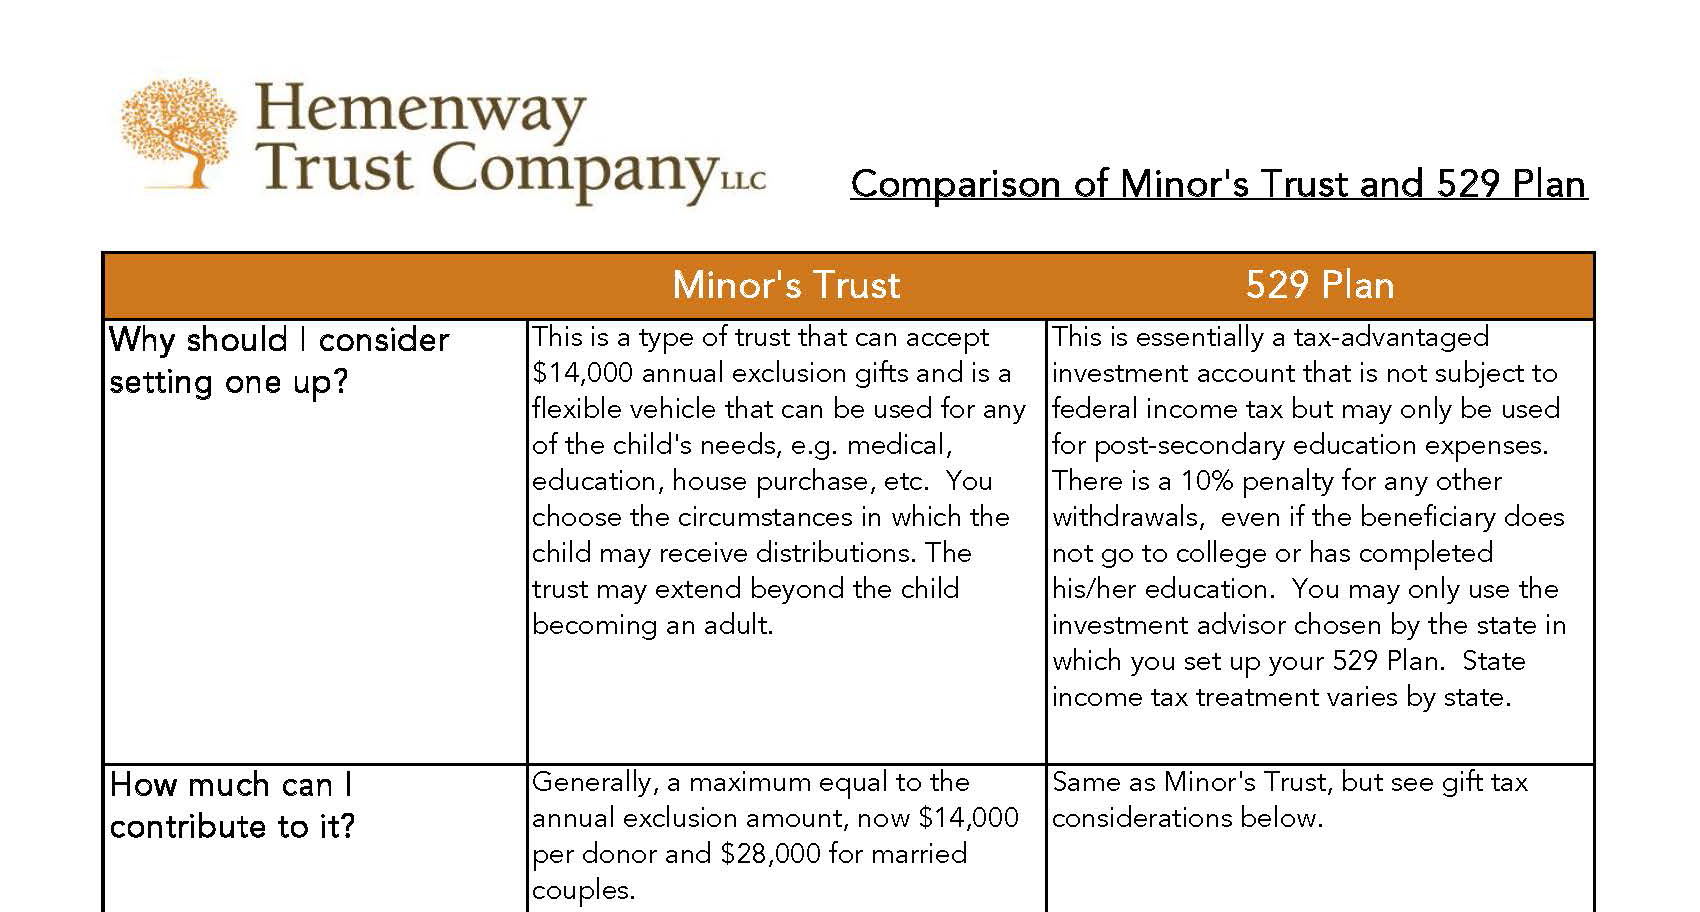 HTC Comparison of 529 Plan and Minor's Trust